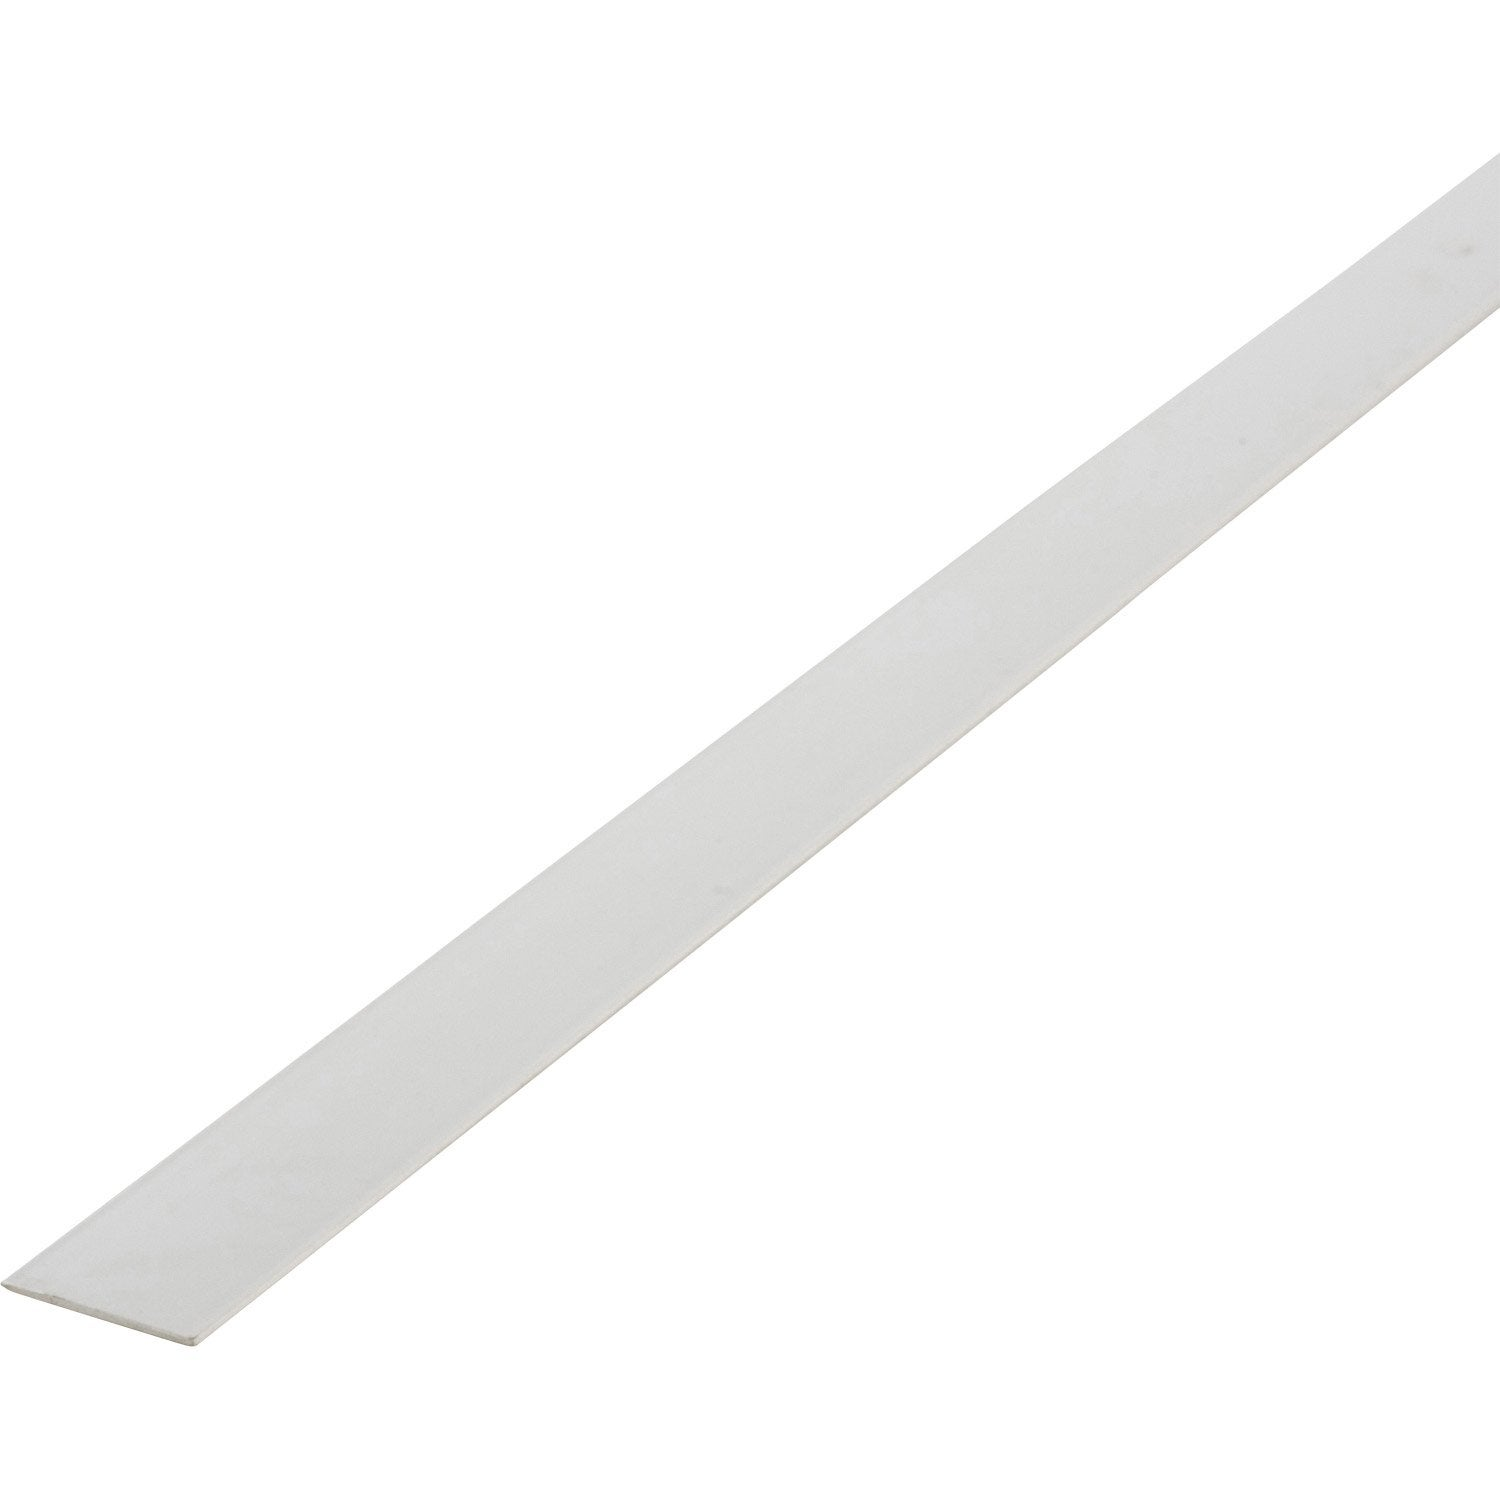 Plat pvc blanc 2 x 40 mm l 2 6 m leroy merlin for Champ plat pvc blanc